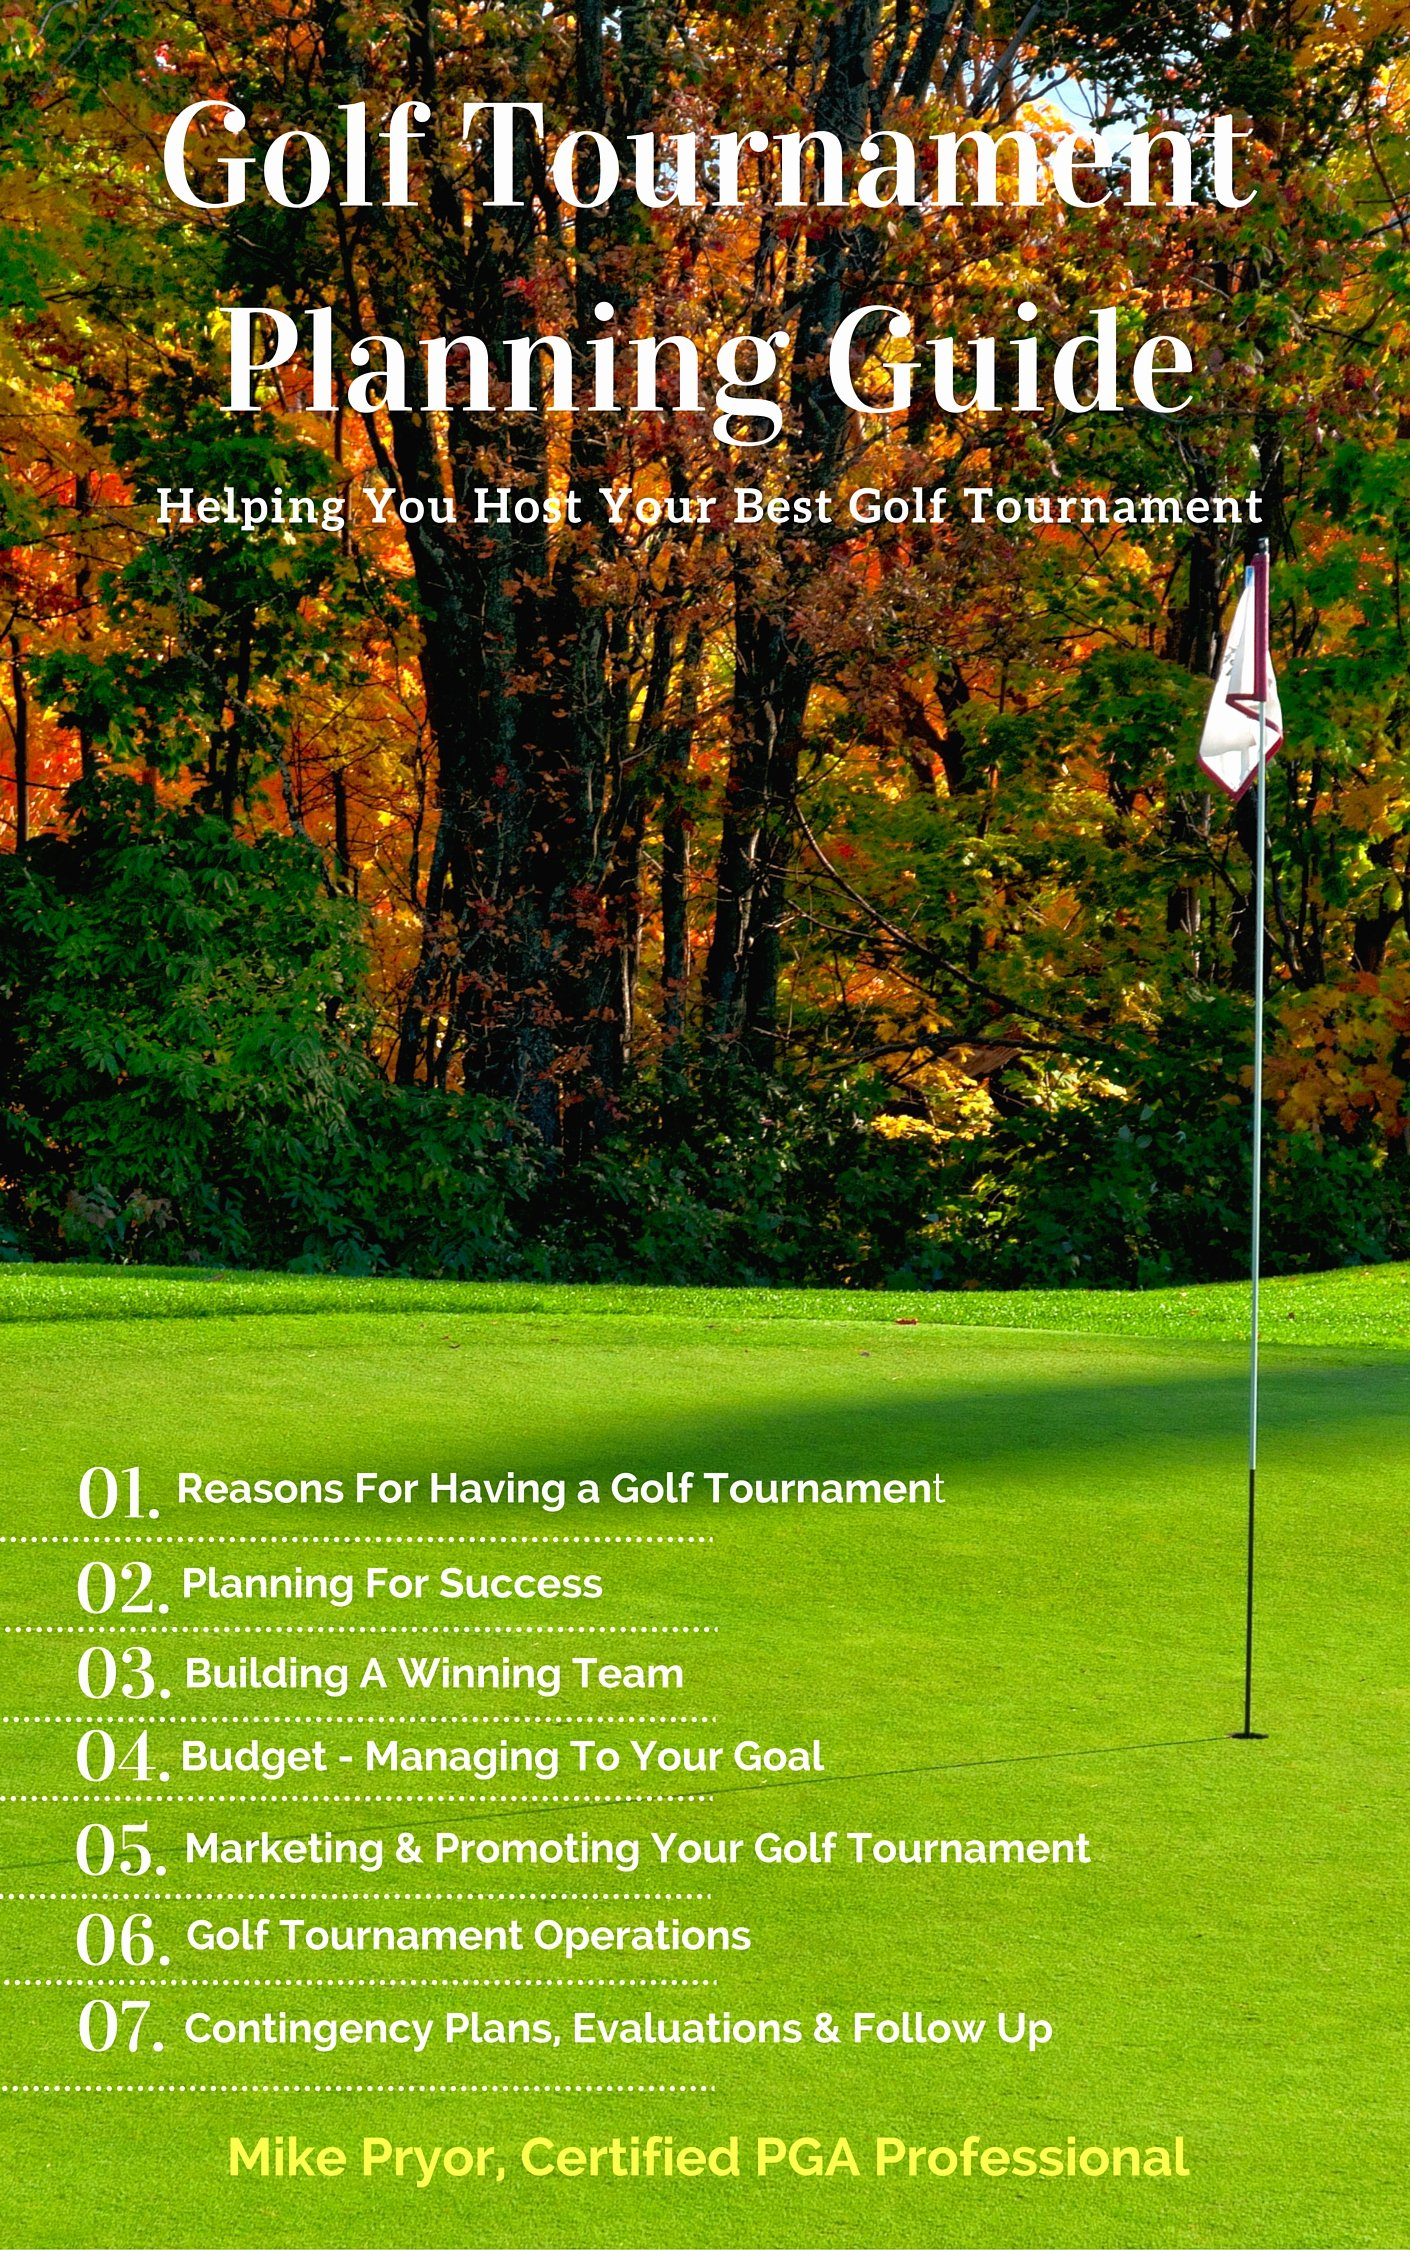 Golf tournament Entry forms Template Beautiful Golf tournament Planning Center – Helping You to Host A